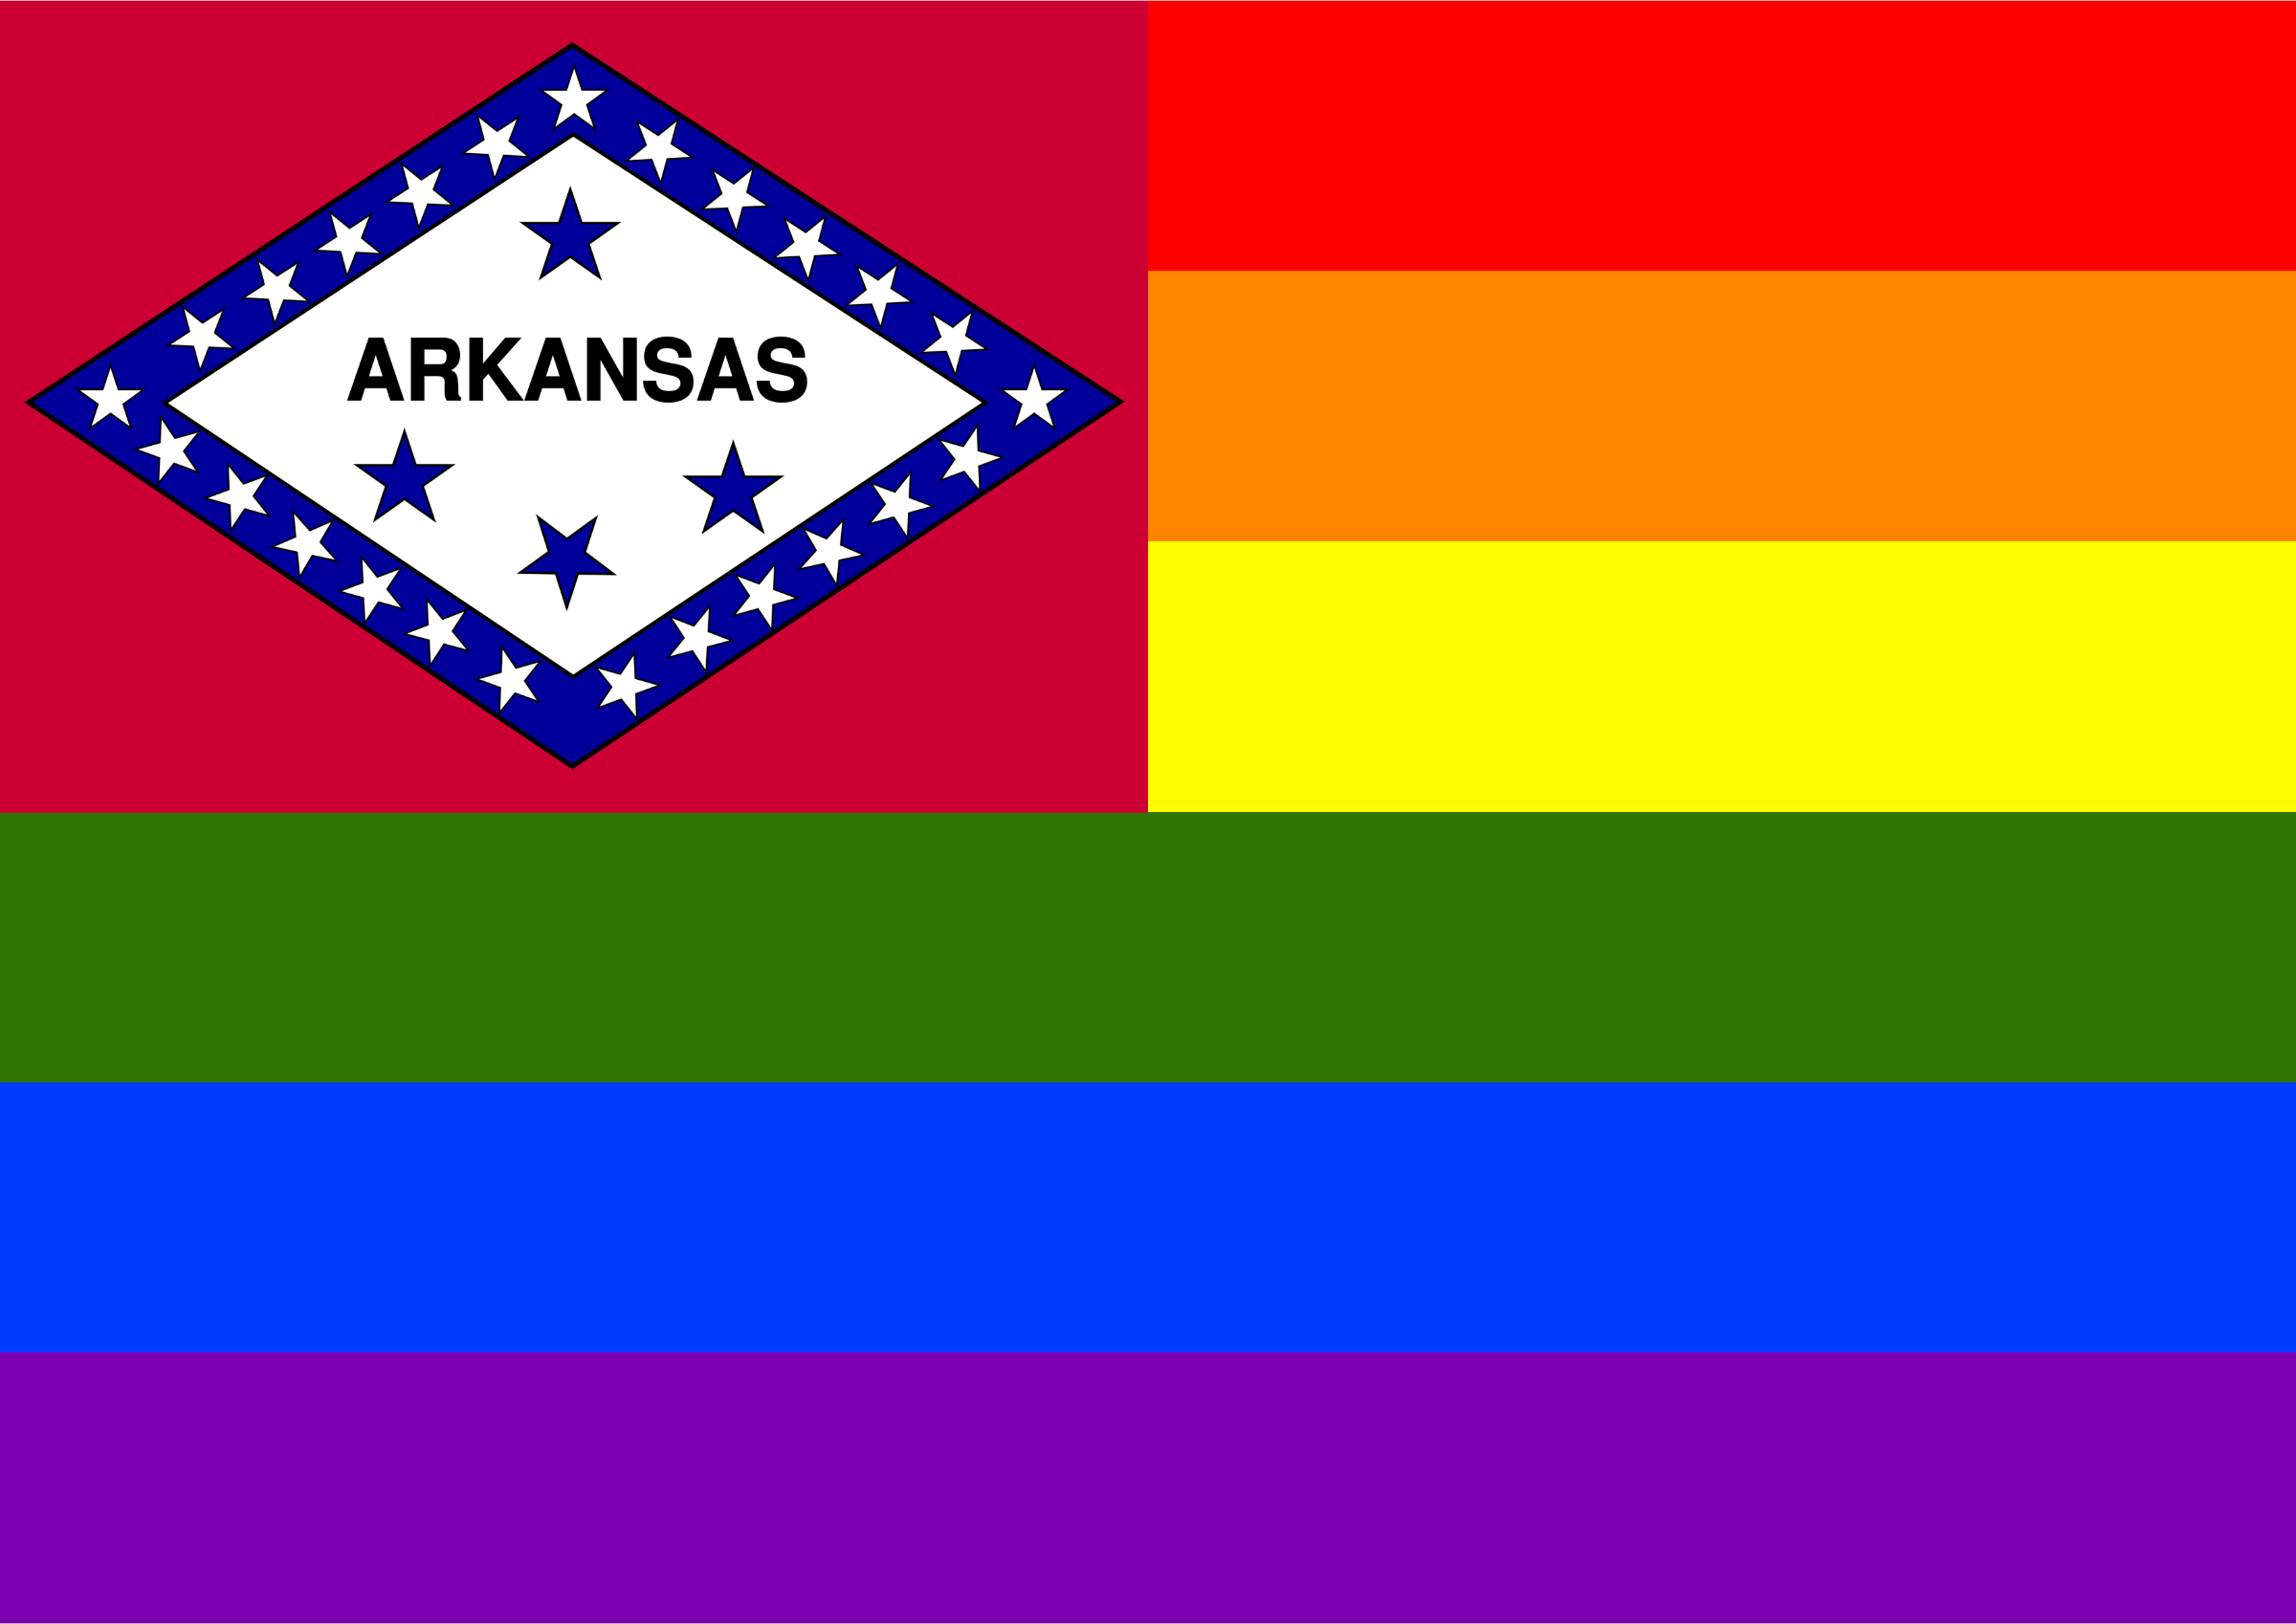 Rainbow Flag Arkansas 1 by Hirnlichtspiele